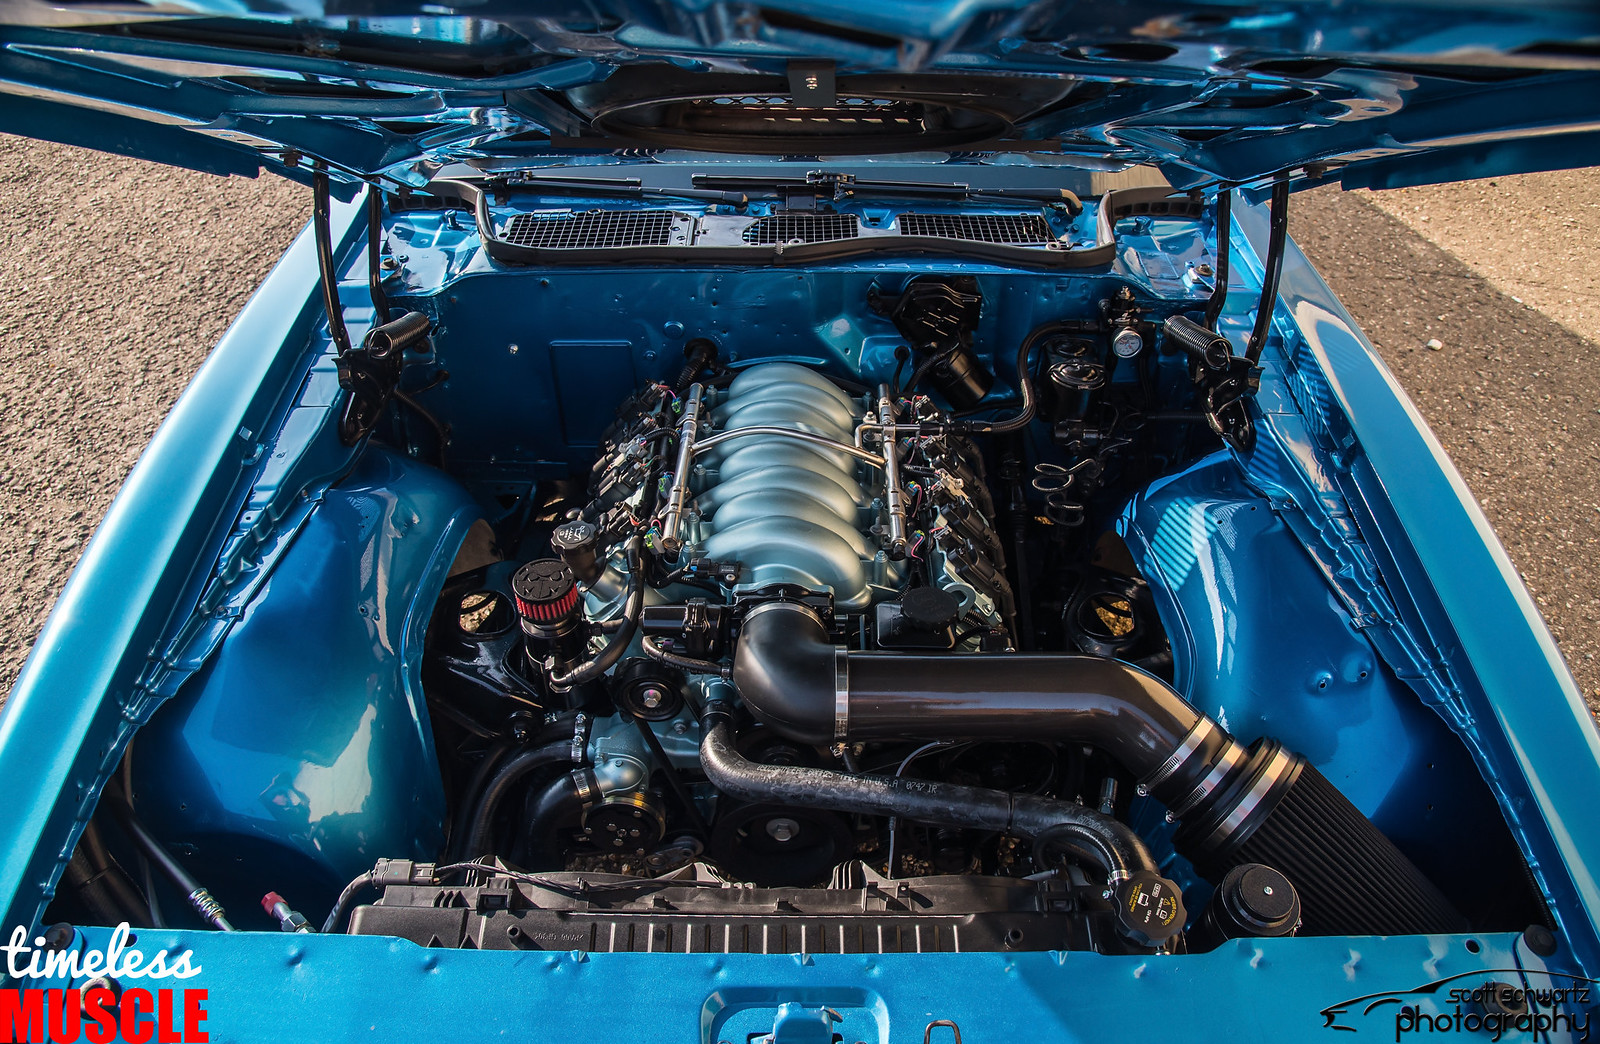 1971 Firebird LS (L76) swap with 6L80e 6 speed auto, PICTURE